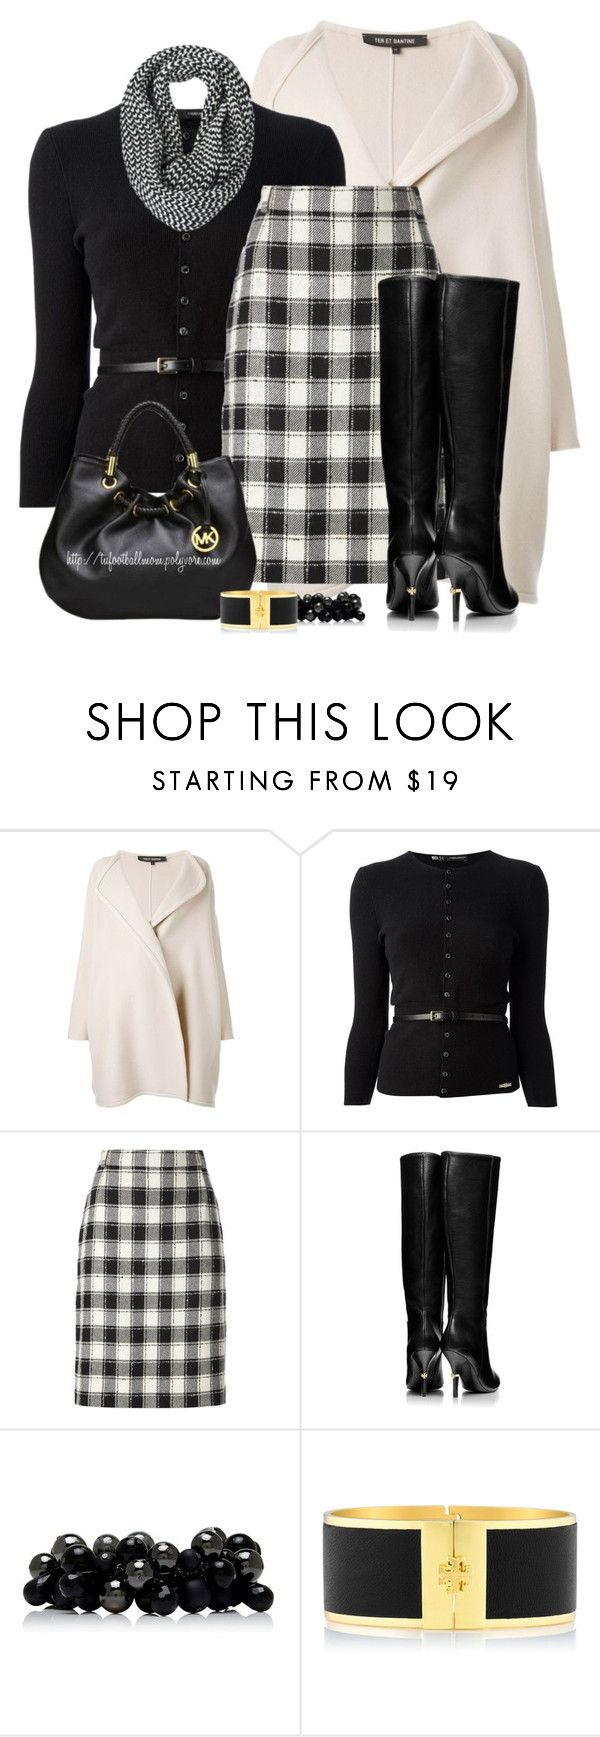 """""""Christmas Eve Church Service"""" by tufootballmom ❤ liked on Polyvore featuring Ter Et Bantine, Dsquared2, Pierre Cardin, Tory Burch, Michael Kors, Forever New and Burberry"""